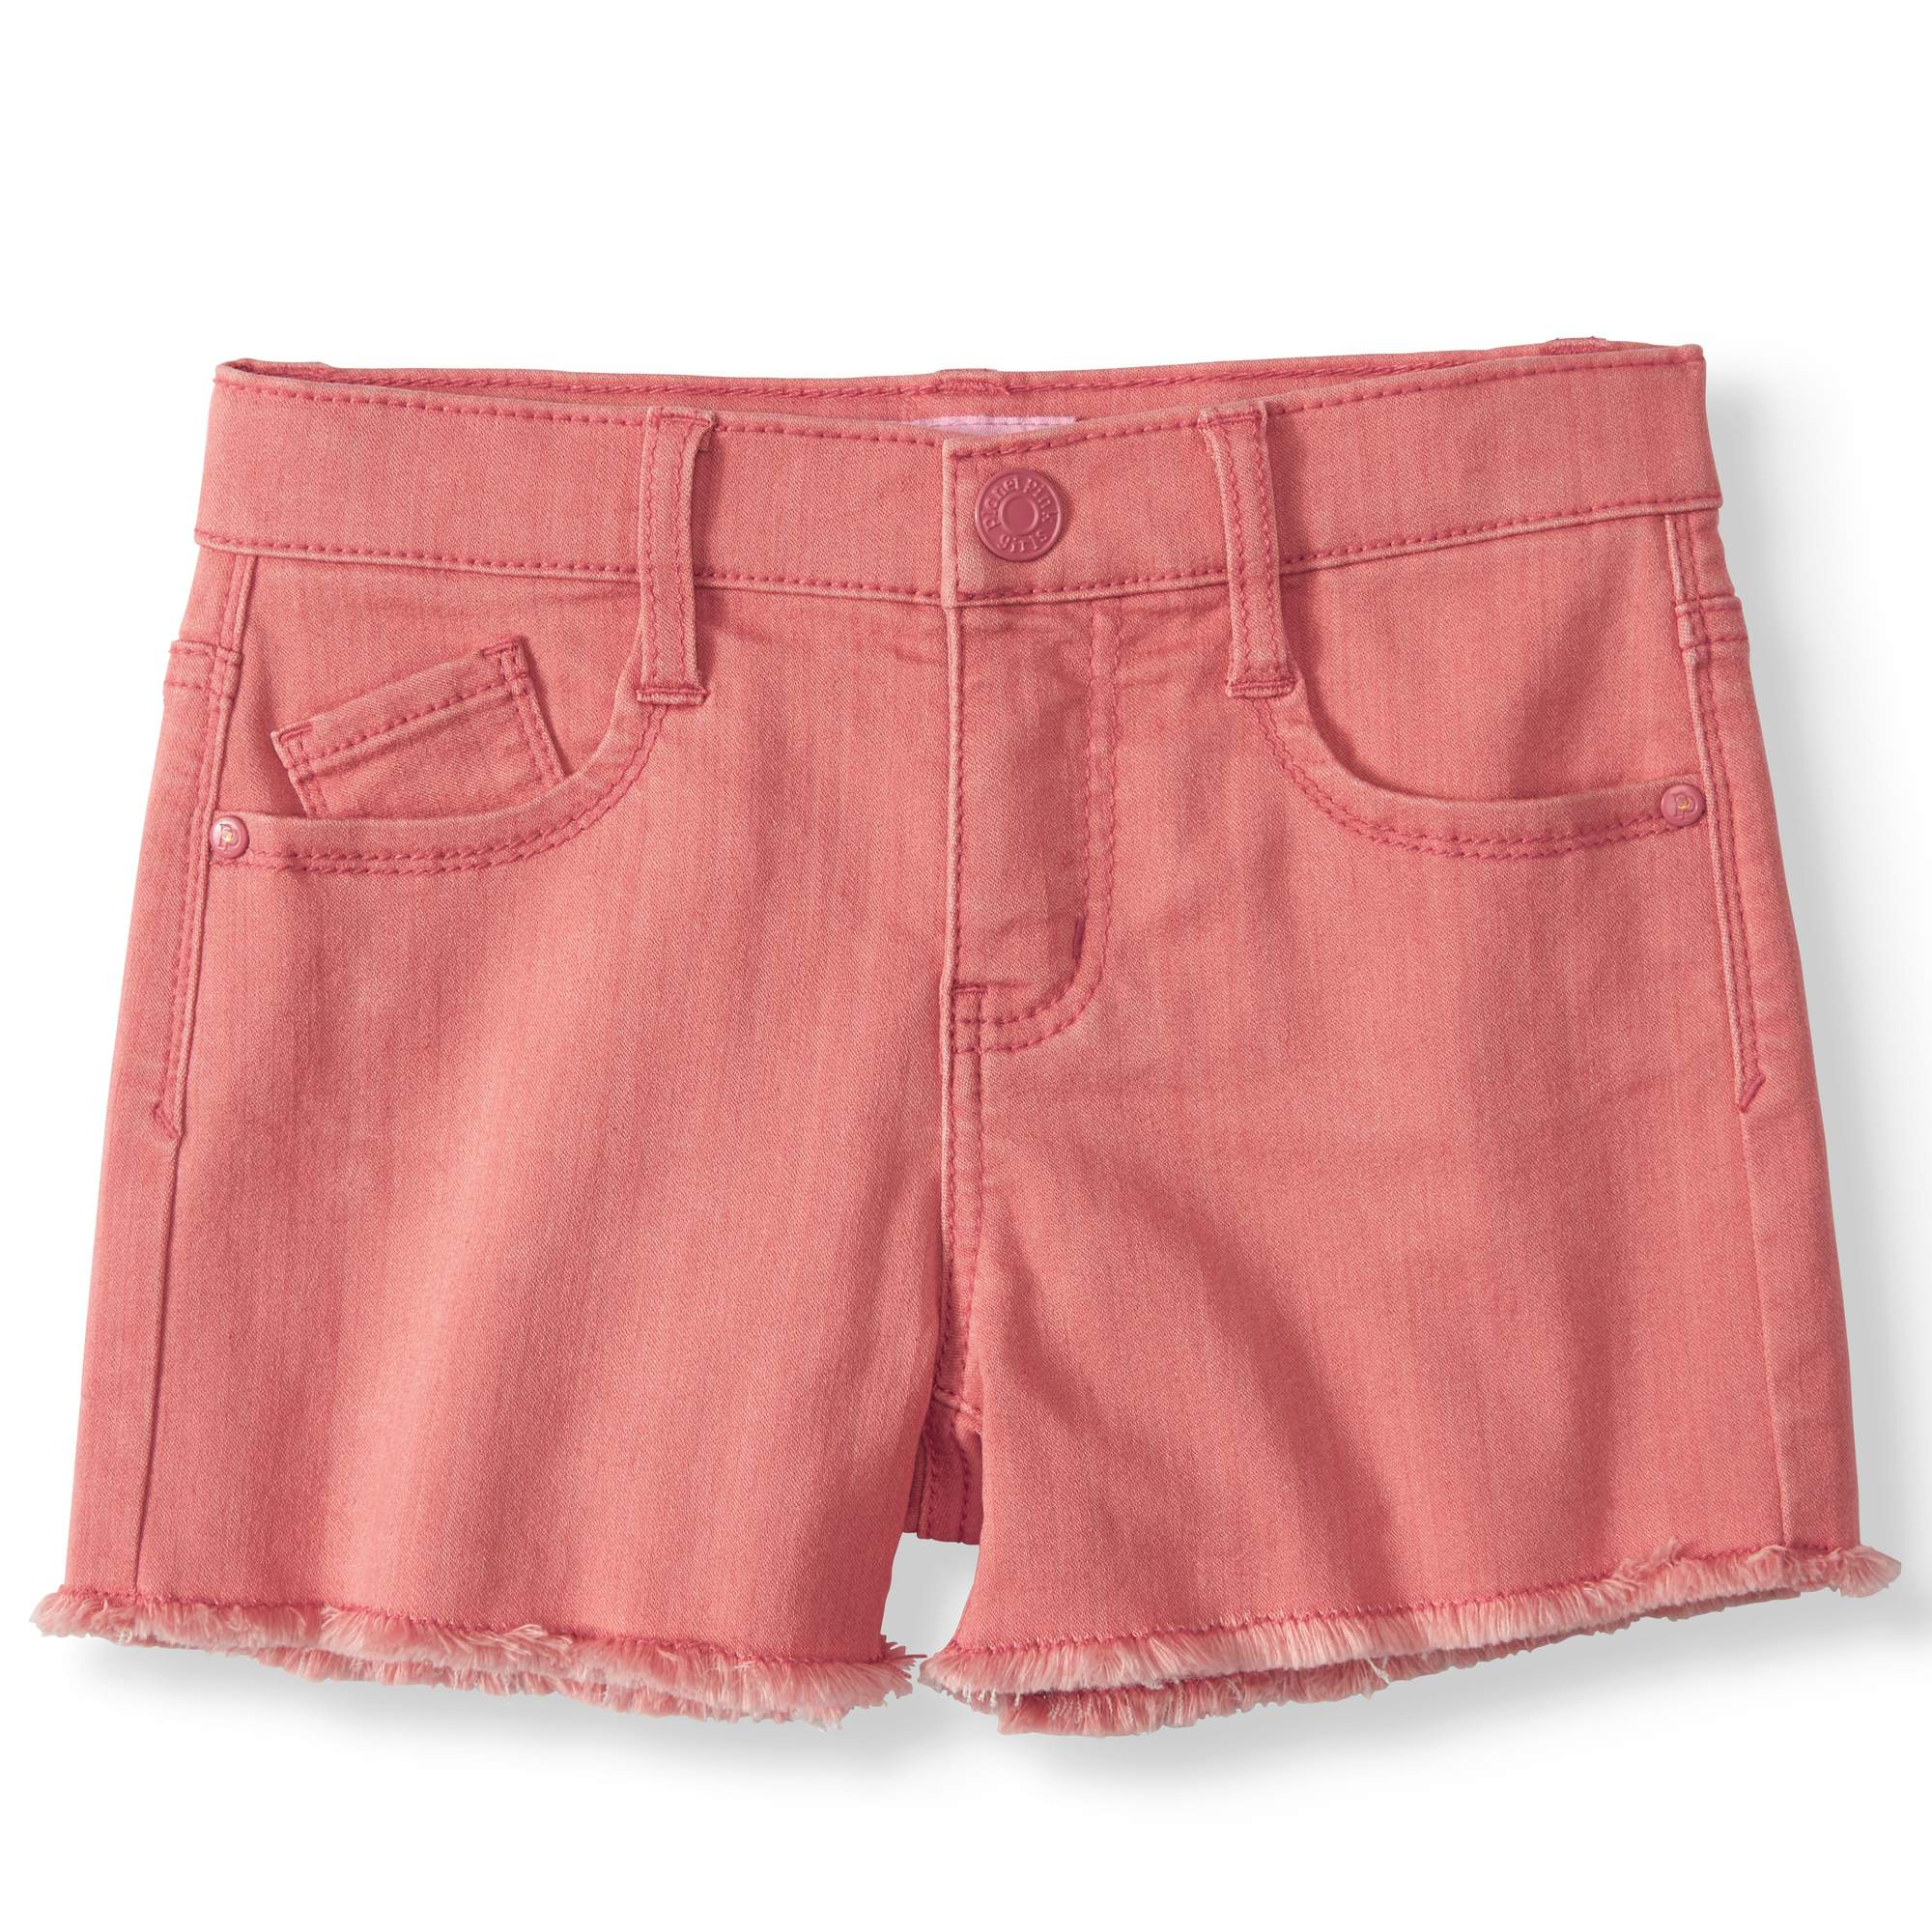 LIttle Girls' 4-6X Super Soft Color Denim Short